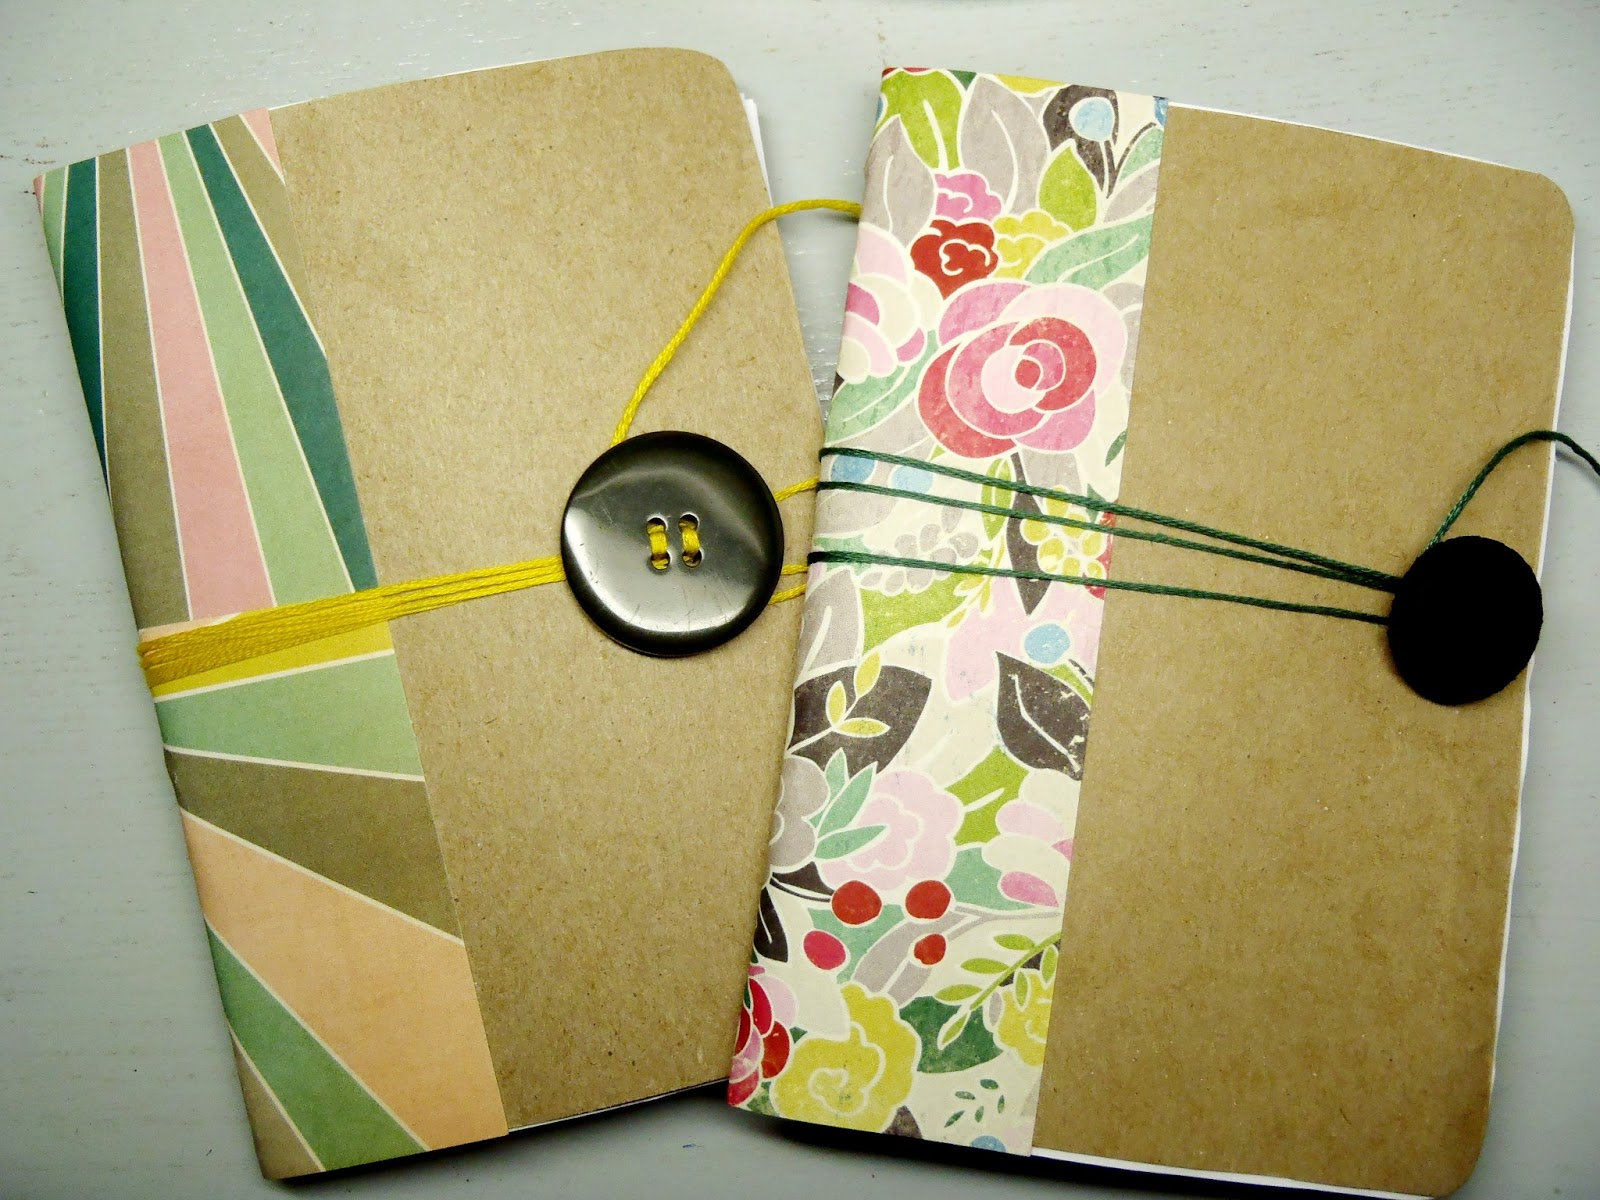 Turning it home upcycled cereal box notebooks for Diy cereal box